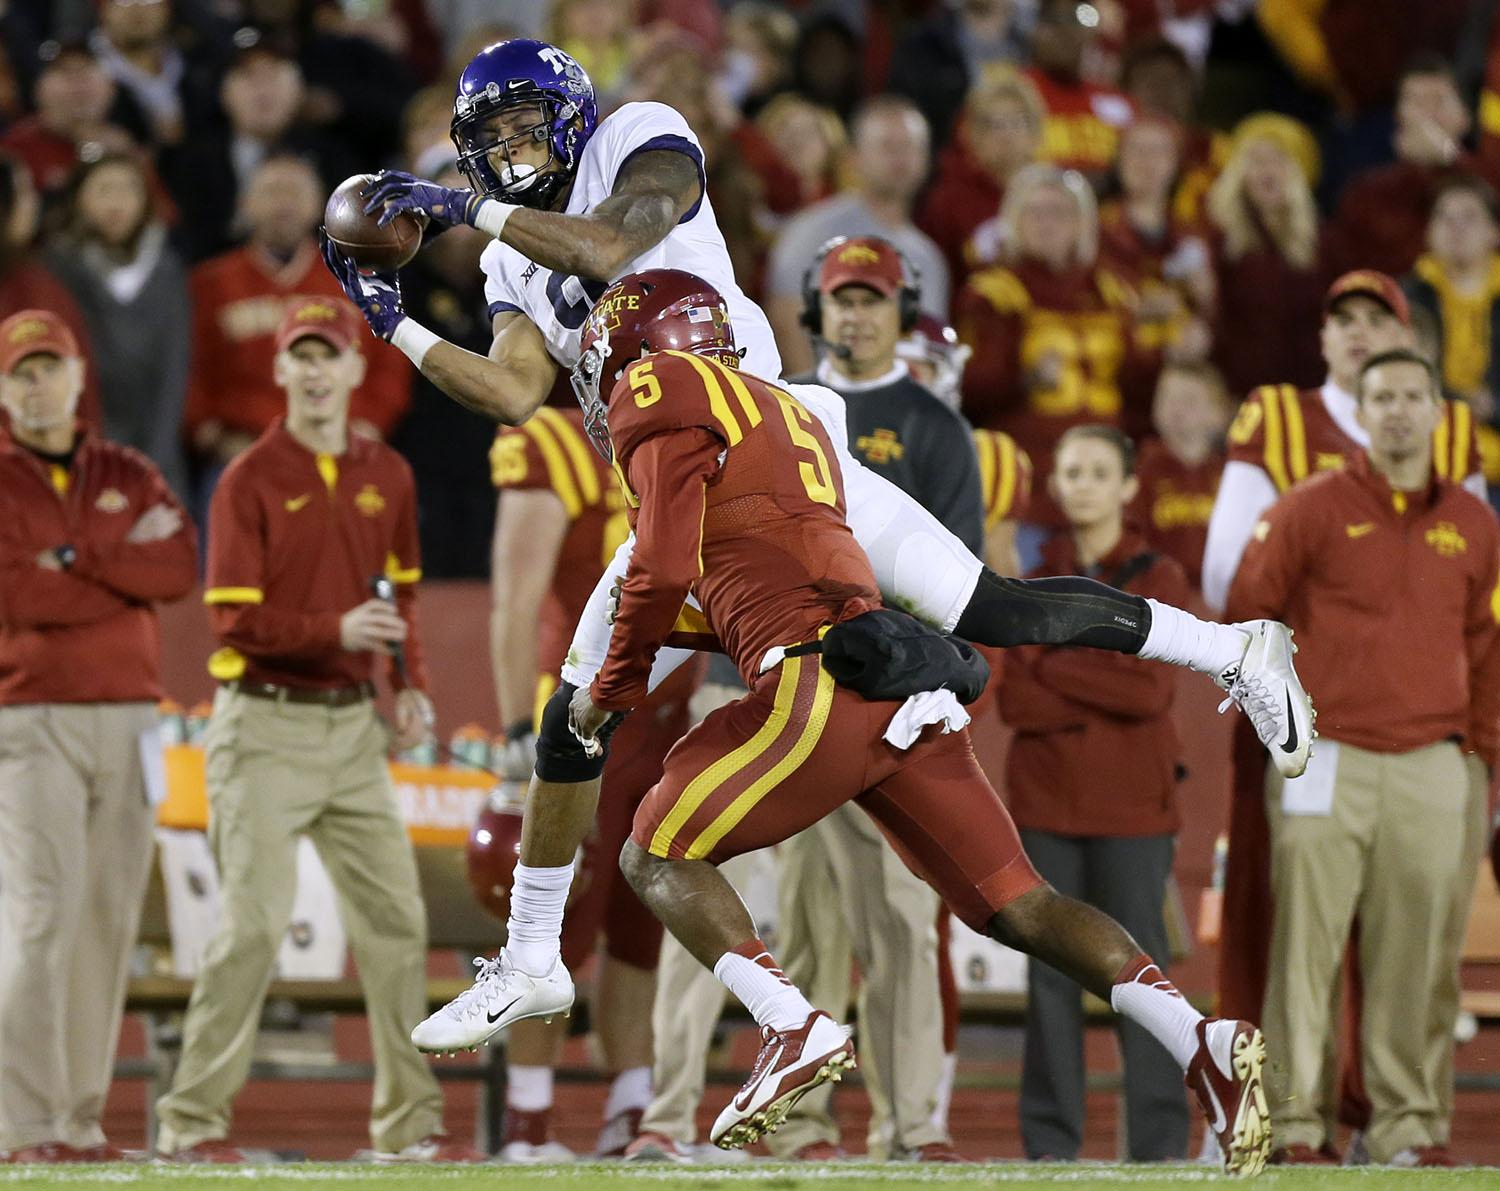 TCU wide receiver Josh Doctson, top, catches a pass over Iowa State defensive back Kamari Cotton-Moya (5) during the first half of an NCAA college football game, Saturday, Oct. 17, 2015, in Ames, Iowa. (AP Photo/Charlie Neibergall)